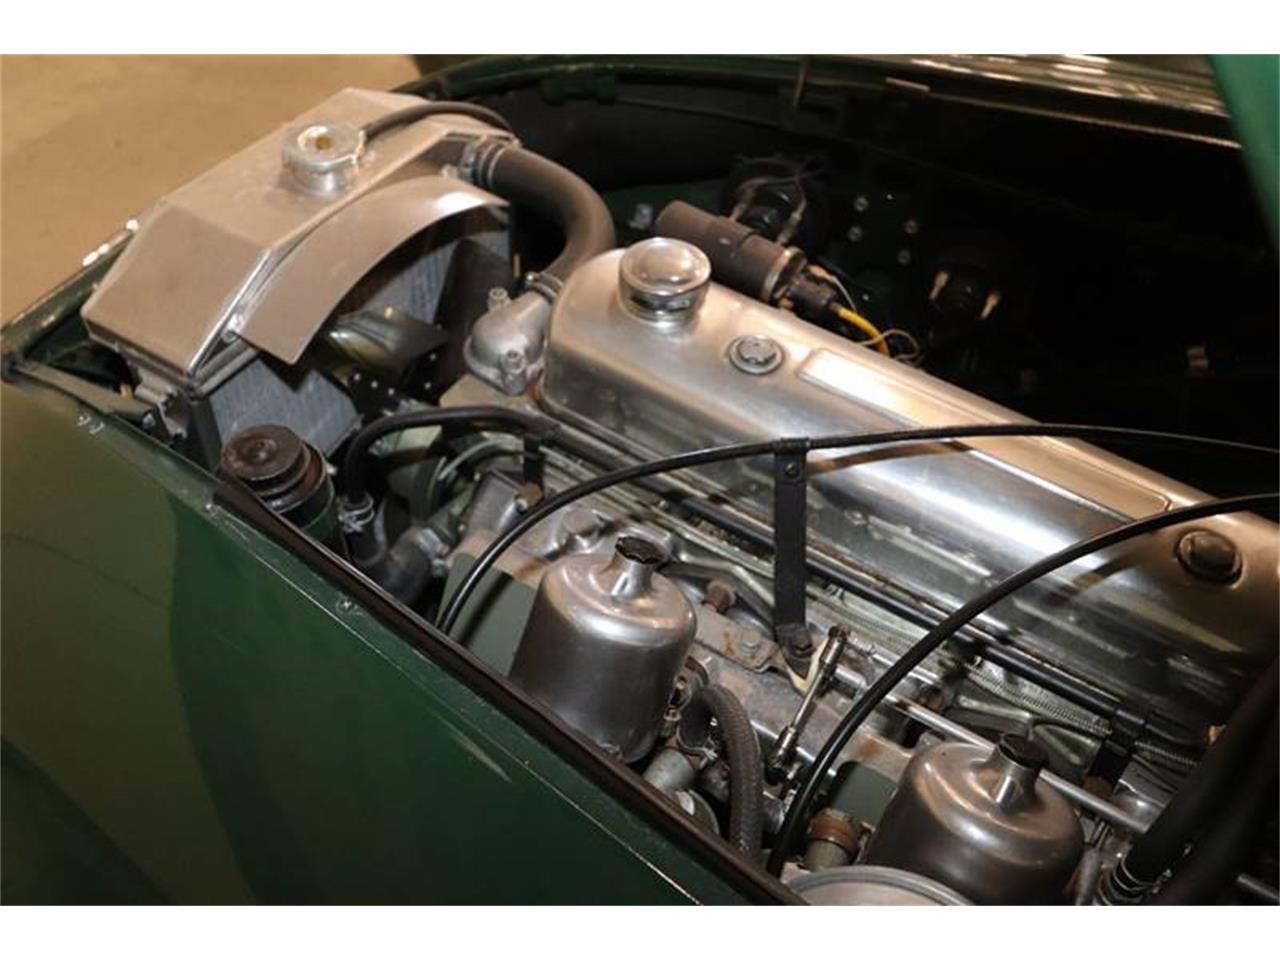 1967 Austin-Healey 3000 Mark III BJ8 for sale in St Louis, MO – photo 25